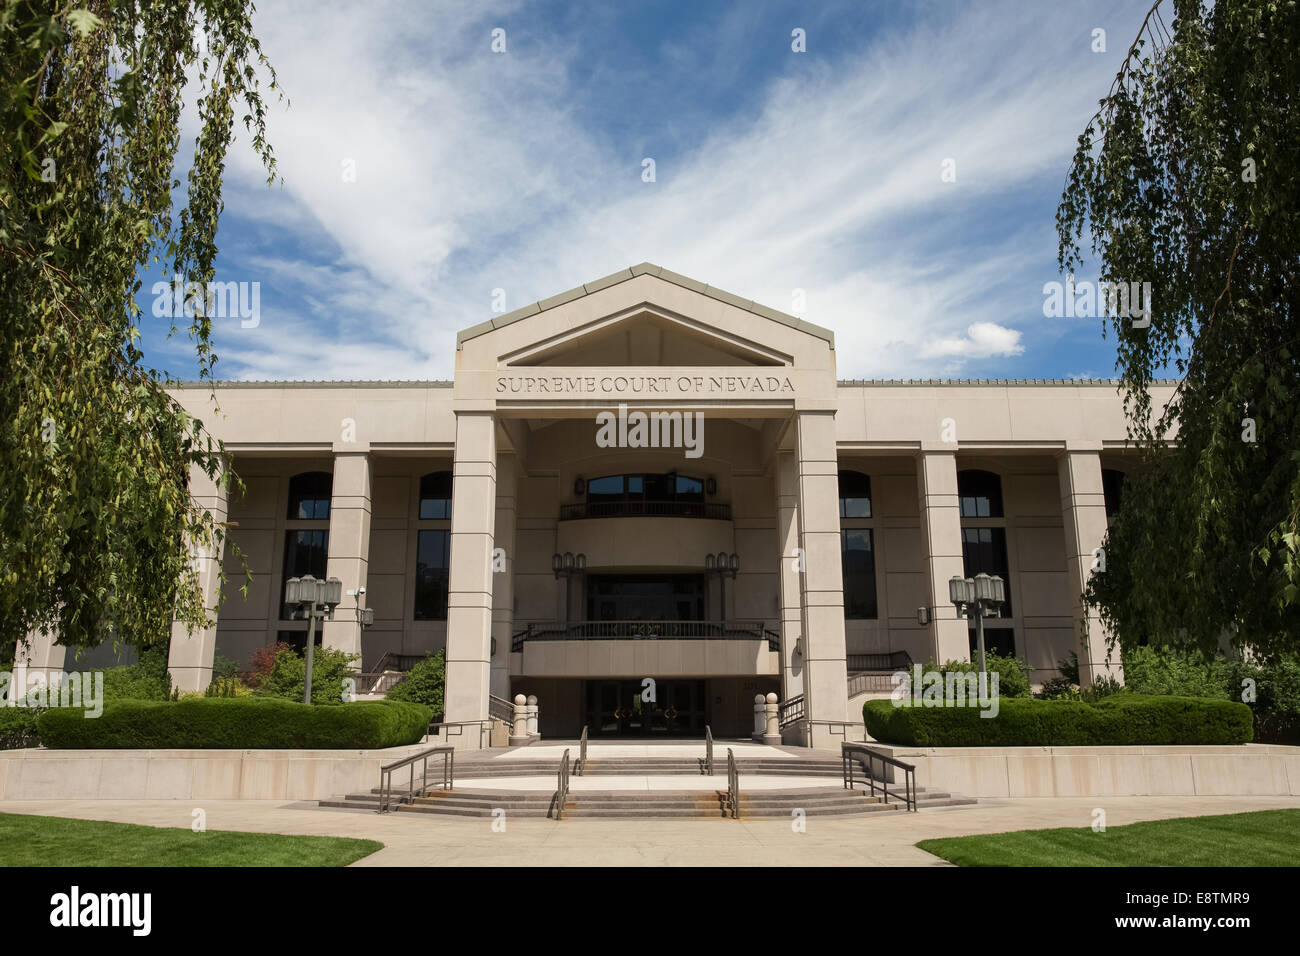 Nevada Supreme Court building in Carson City, the Nevada state capital.  Set against a blue sky.  Horizontal orientation. - Stock Image